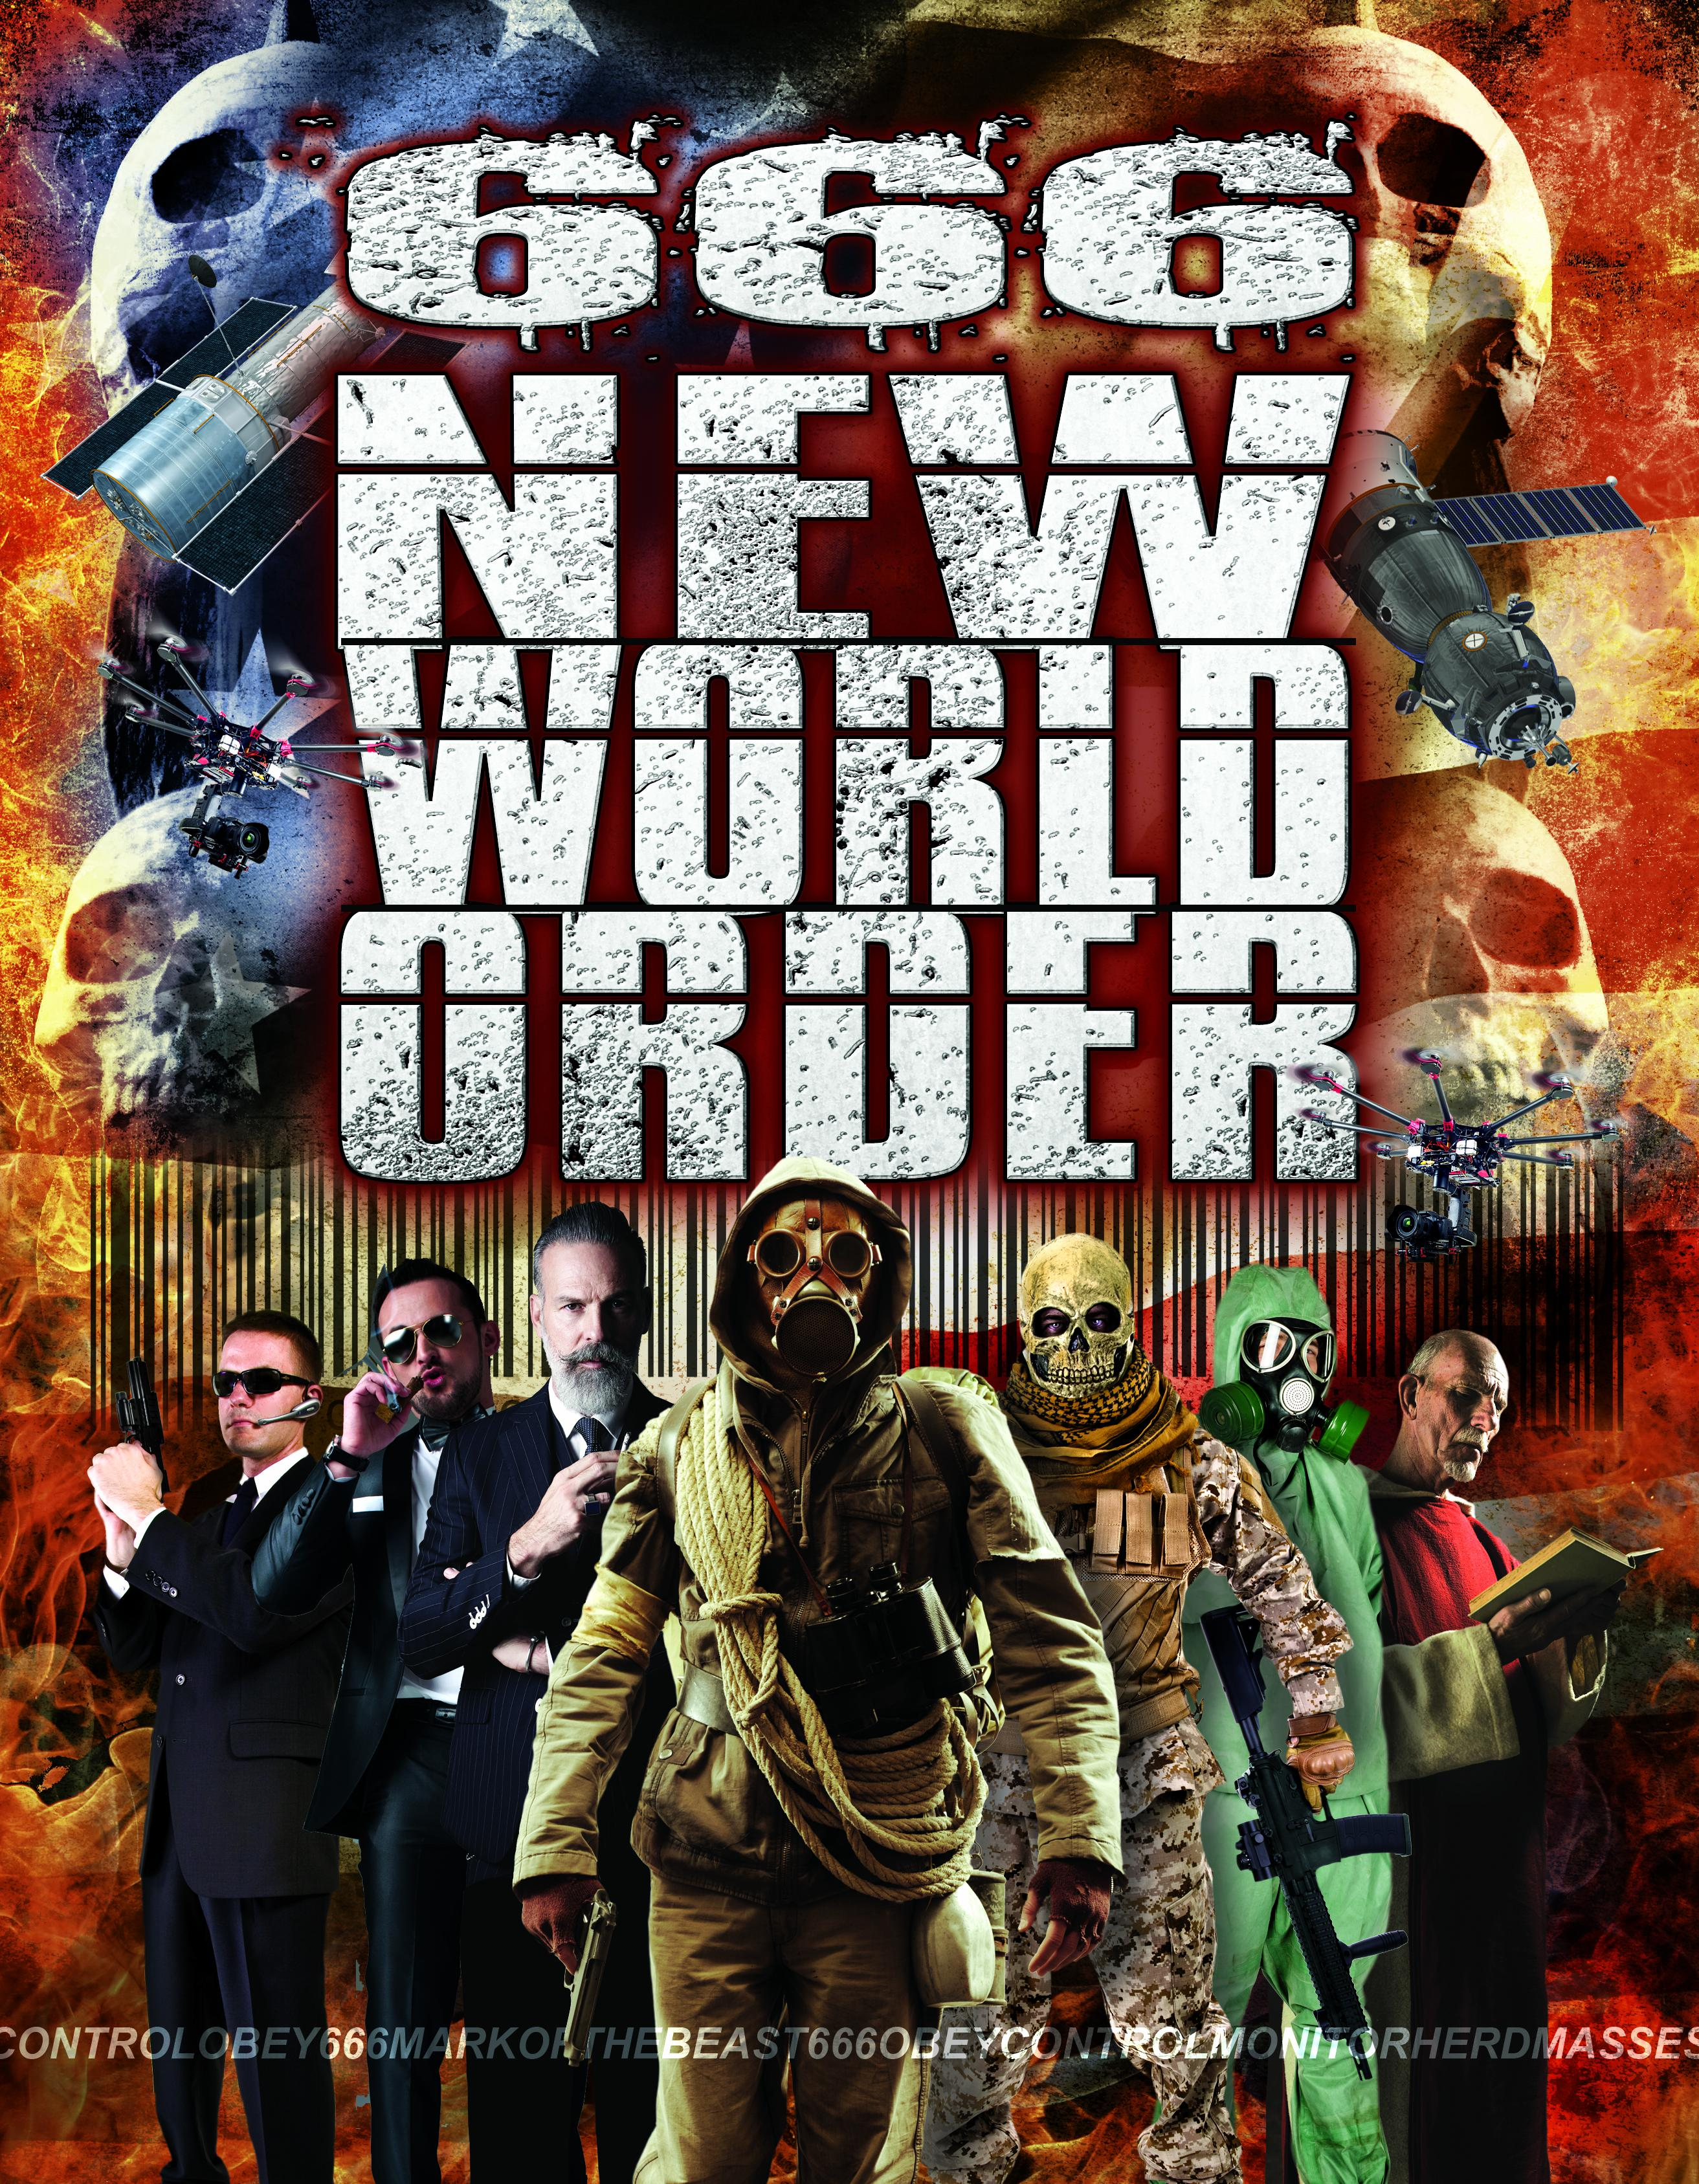 666: The New World Order